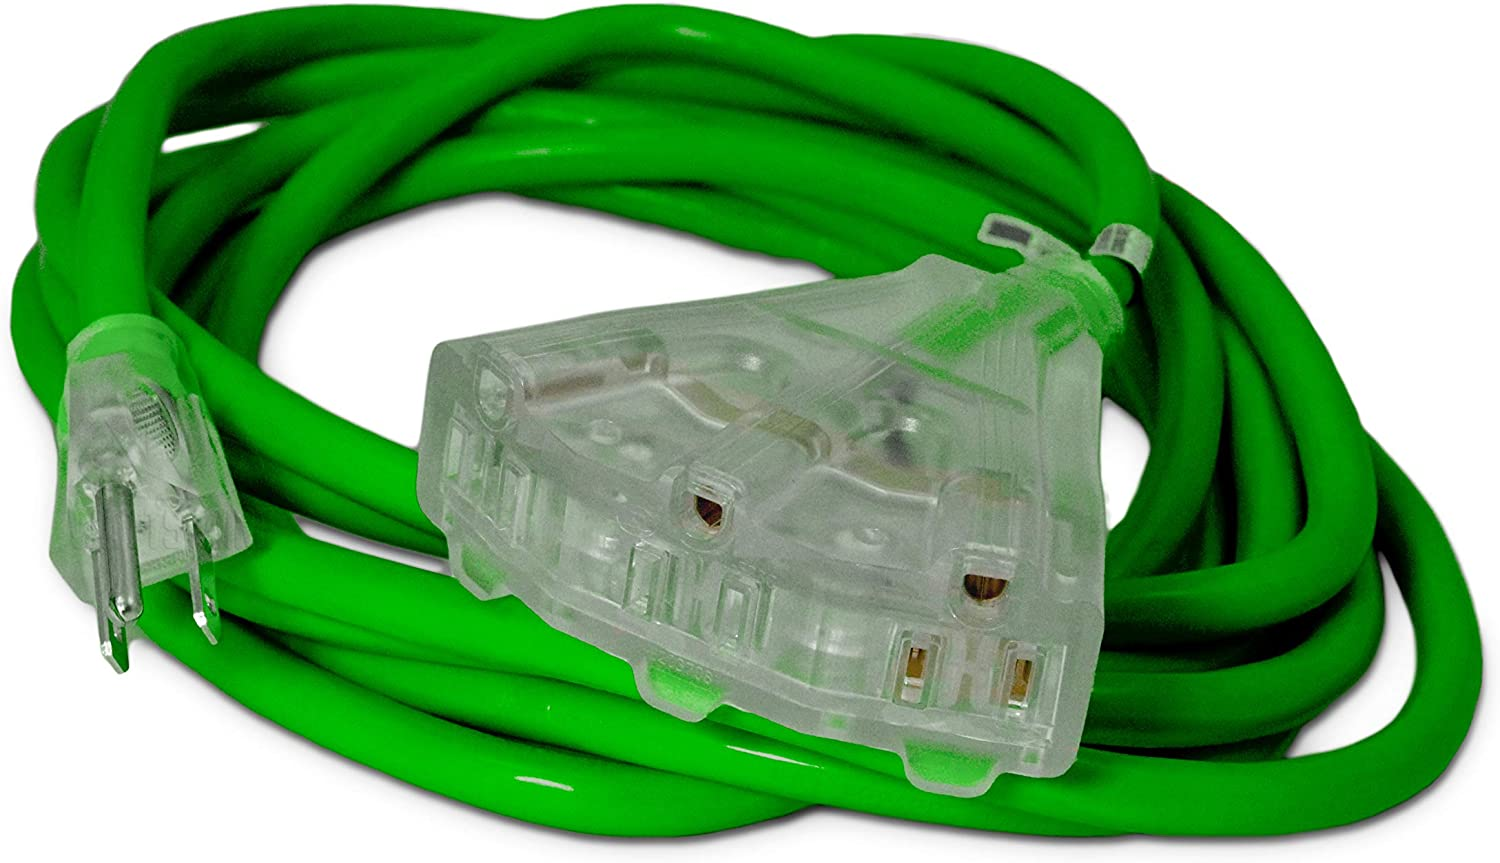 15-ft 14/3 Heavy Duty 3-Outlet Lighted SJTW Indoor/Outdoor Extension Cord by Watt's Wire - Green 15' 14-Gauge Grounded 15-Amp Three-Prong Power-Cord (15 foot 14-Awg)